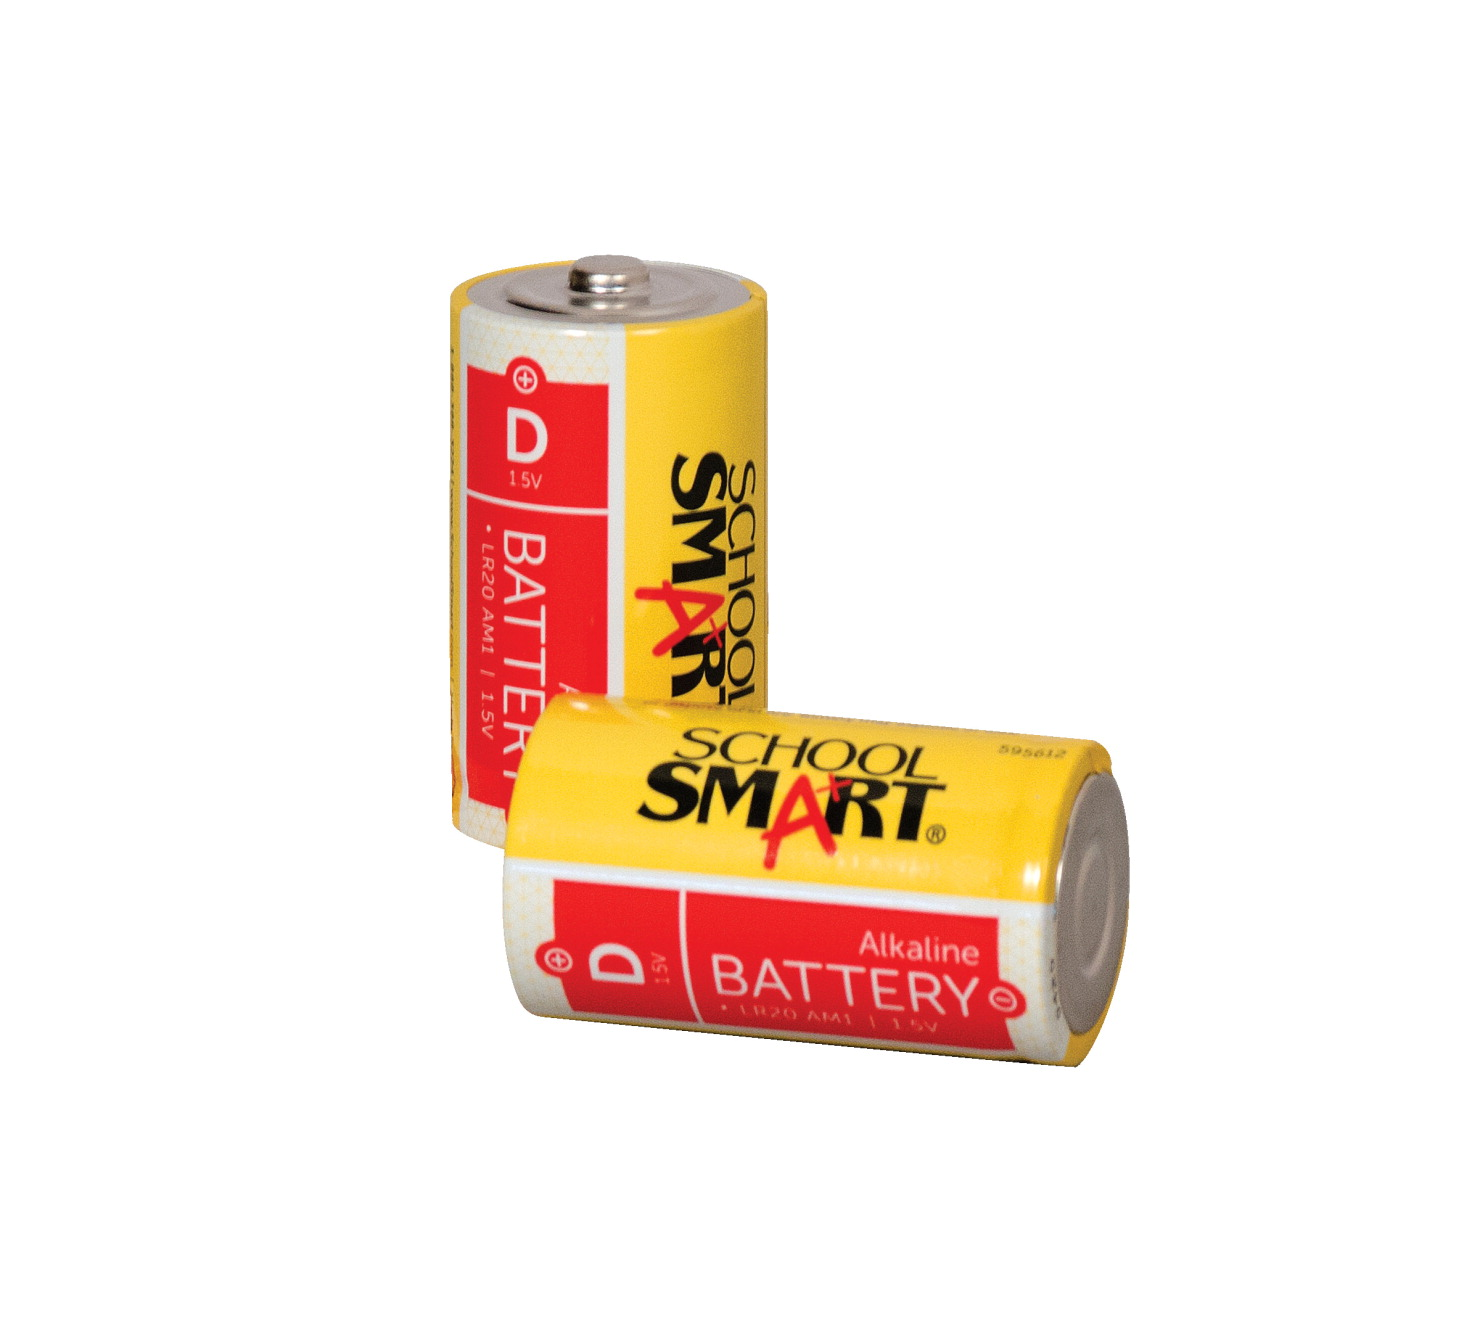 School Smart Alkaline D Batteries, 1.5 Volt, Pack of 2